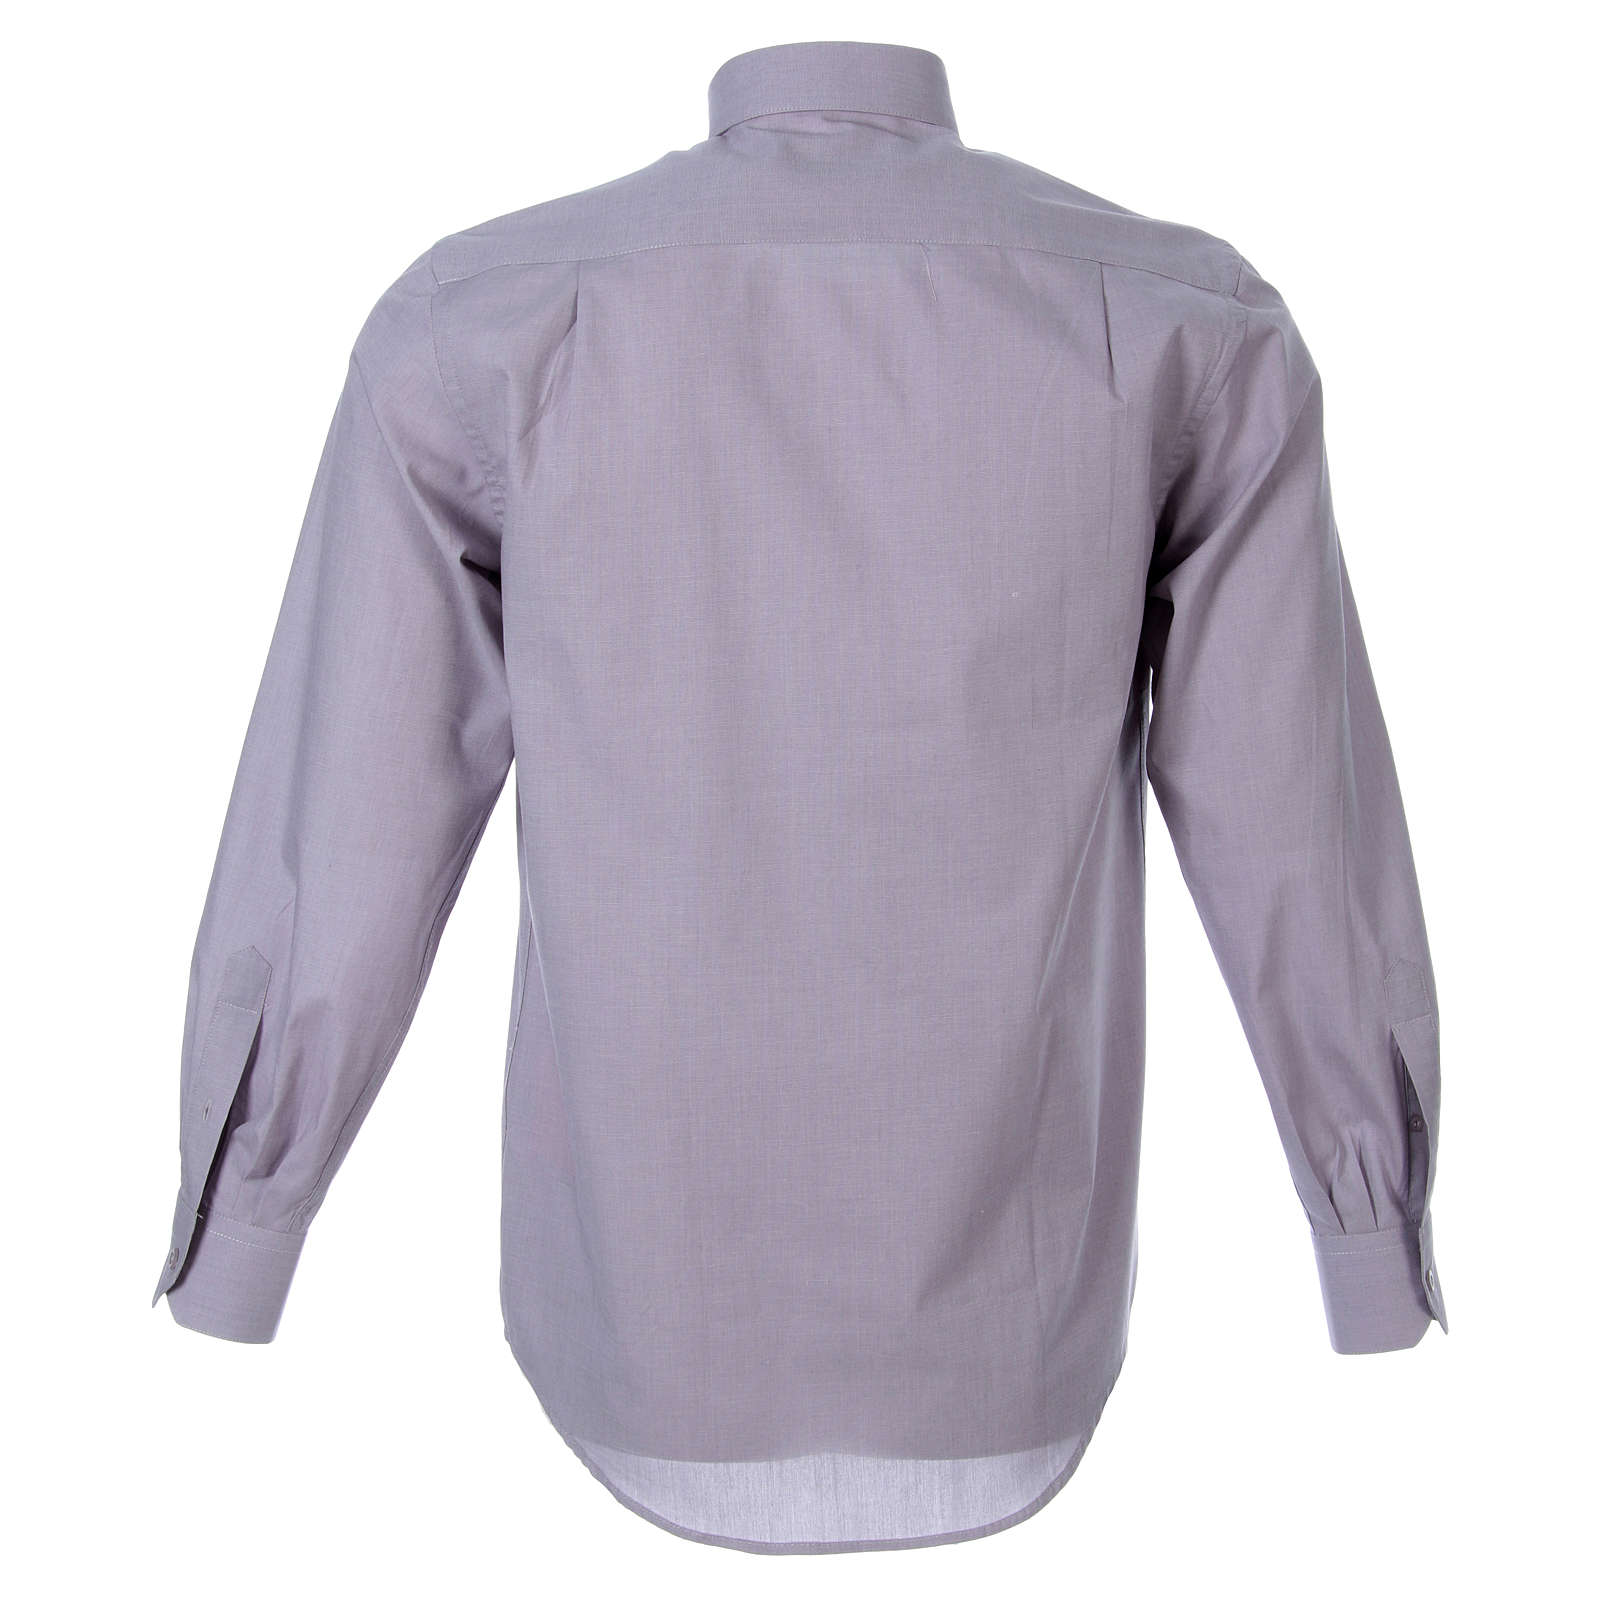 STOCK Clergyman shirt in light grey fil a fil cotton, long sleeves 4